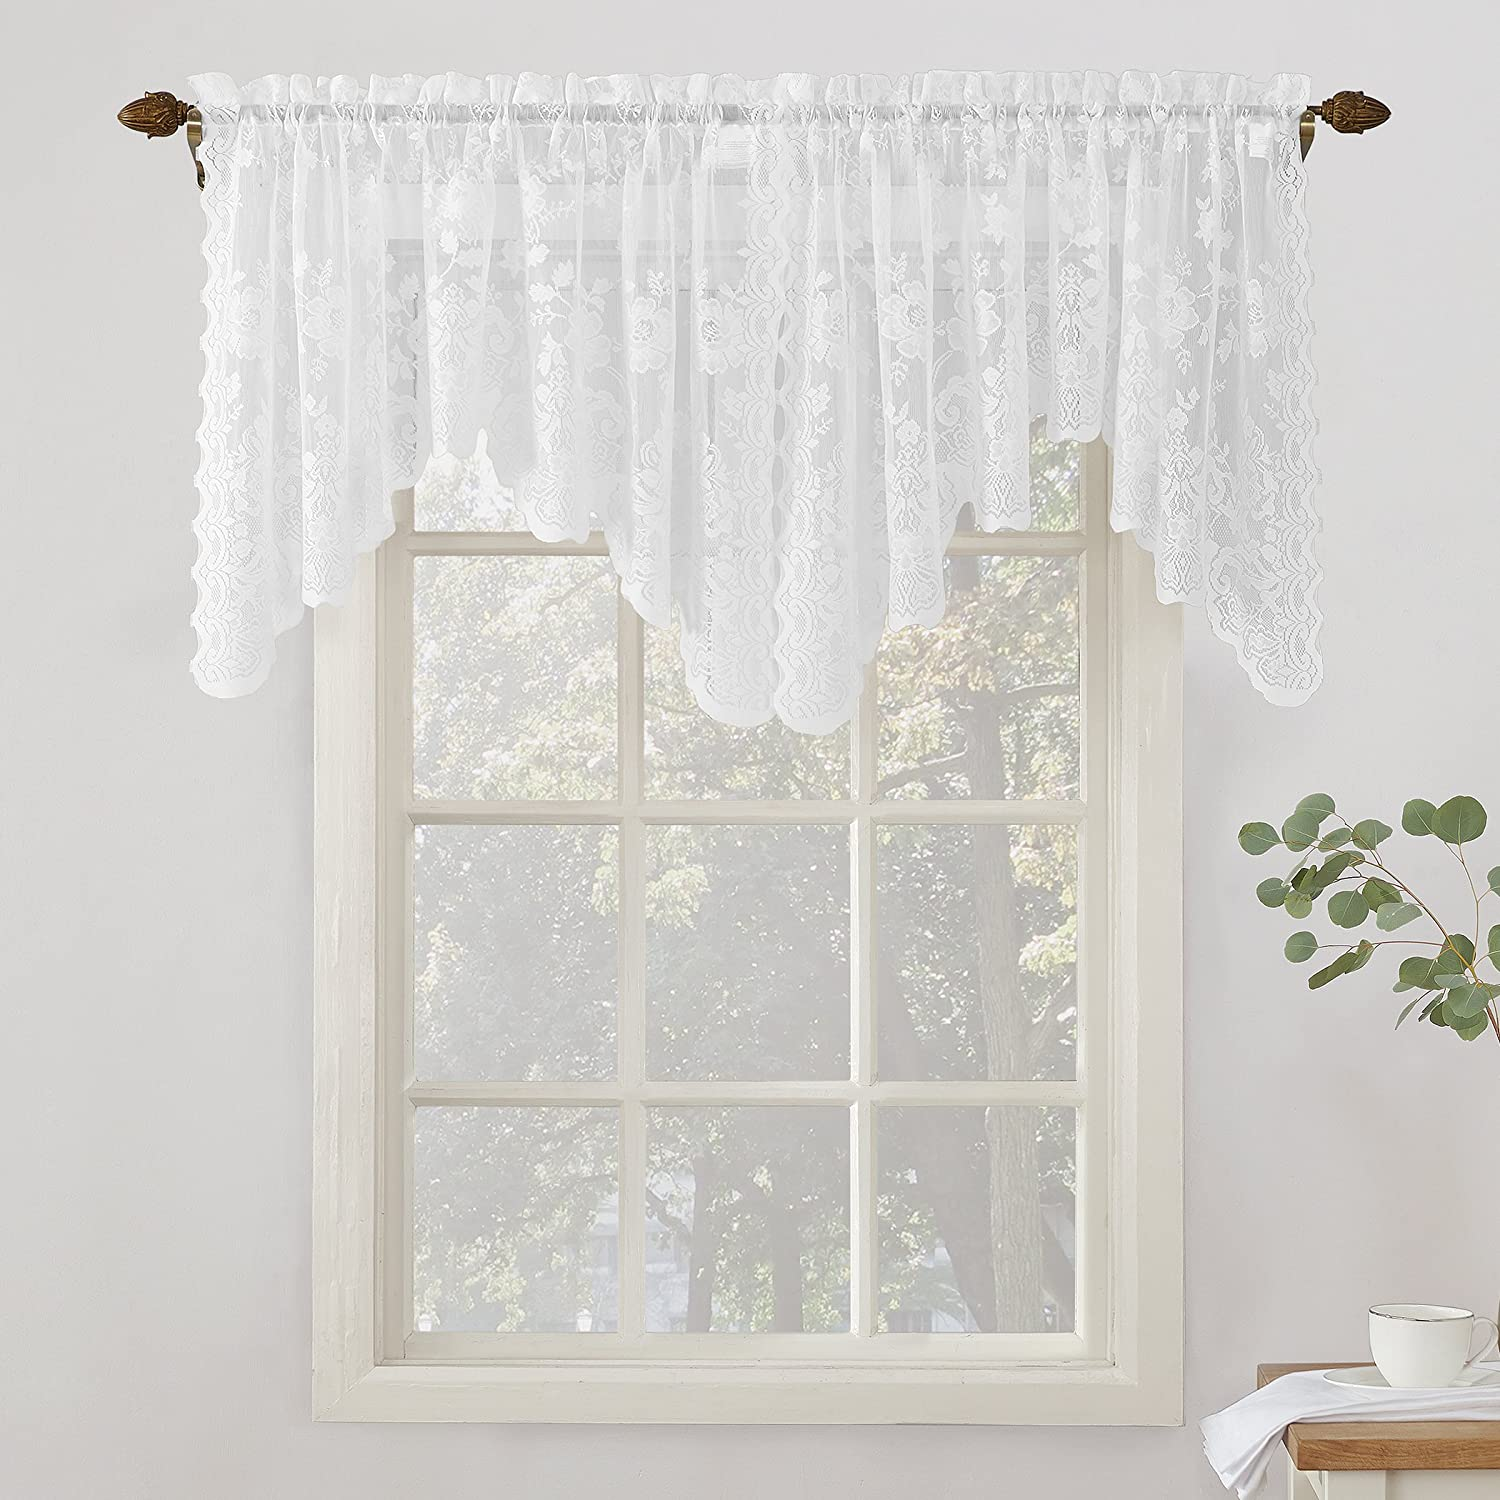 No. 918 Alison Floral Lace Sheer Rod Pocket Valance Curtain Panel, Ivory Off-White, 58 x 32 58 x 32 S. Lichtenberg Co. Inc 24520